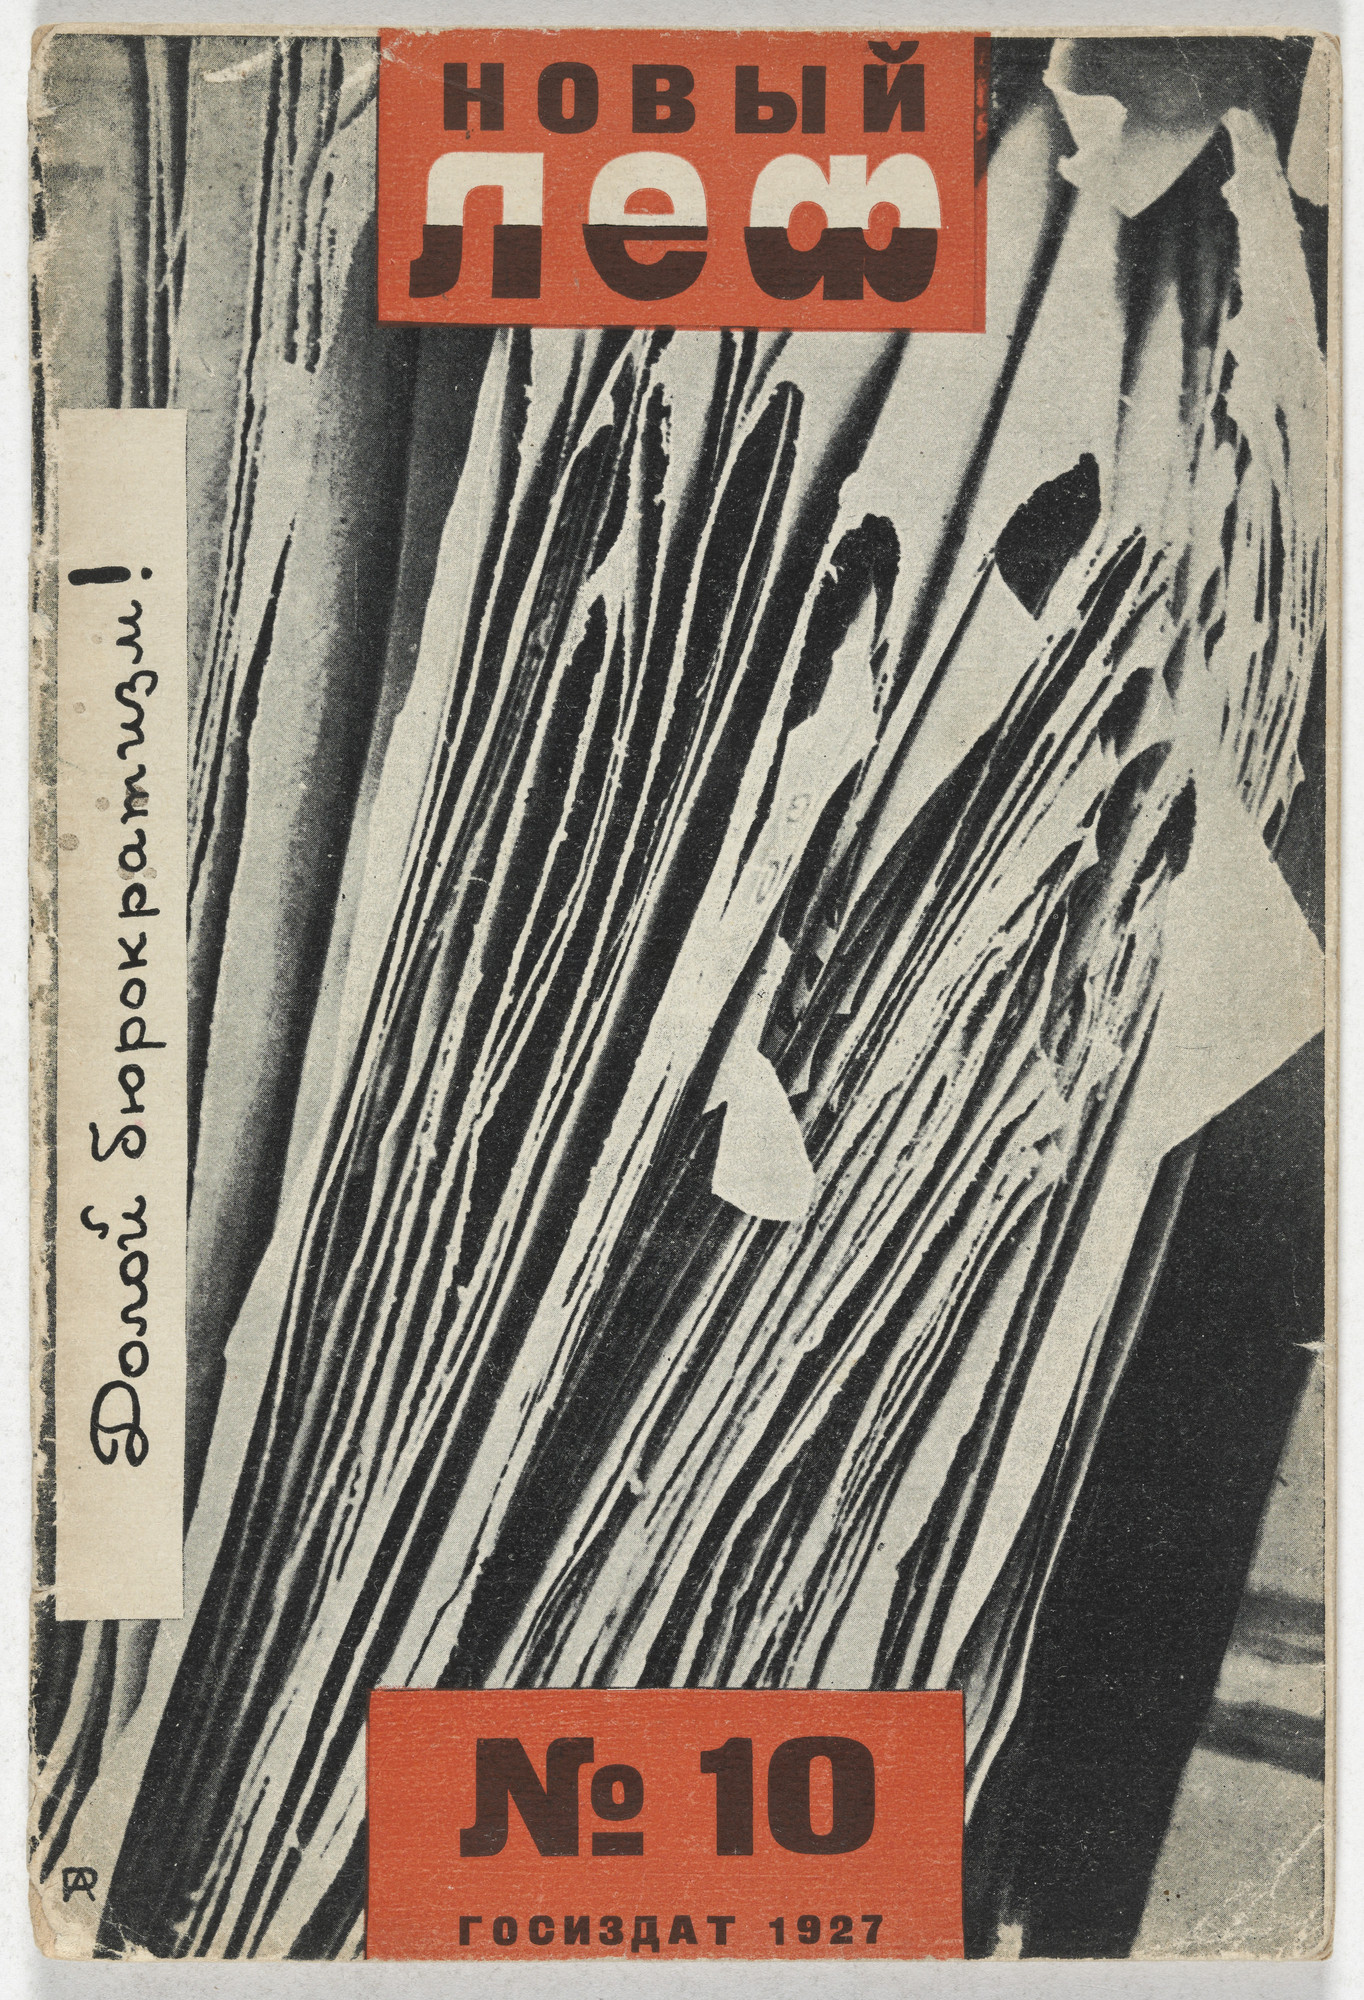 Aleksandr Rodchenko. Novyi LEF. Zhurnal levogo fronta iskusstv (New LEF: Journal of the Left Front of the Arts), no. 10. 1927